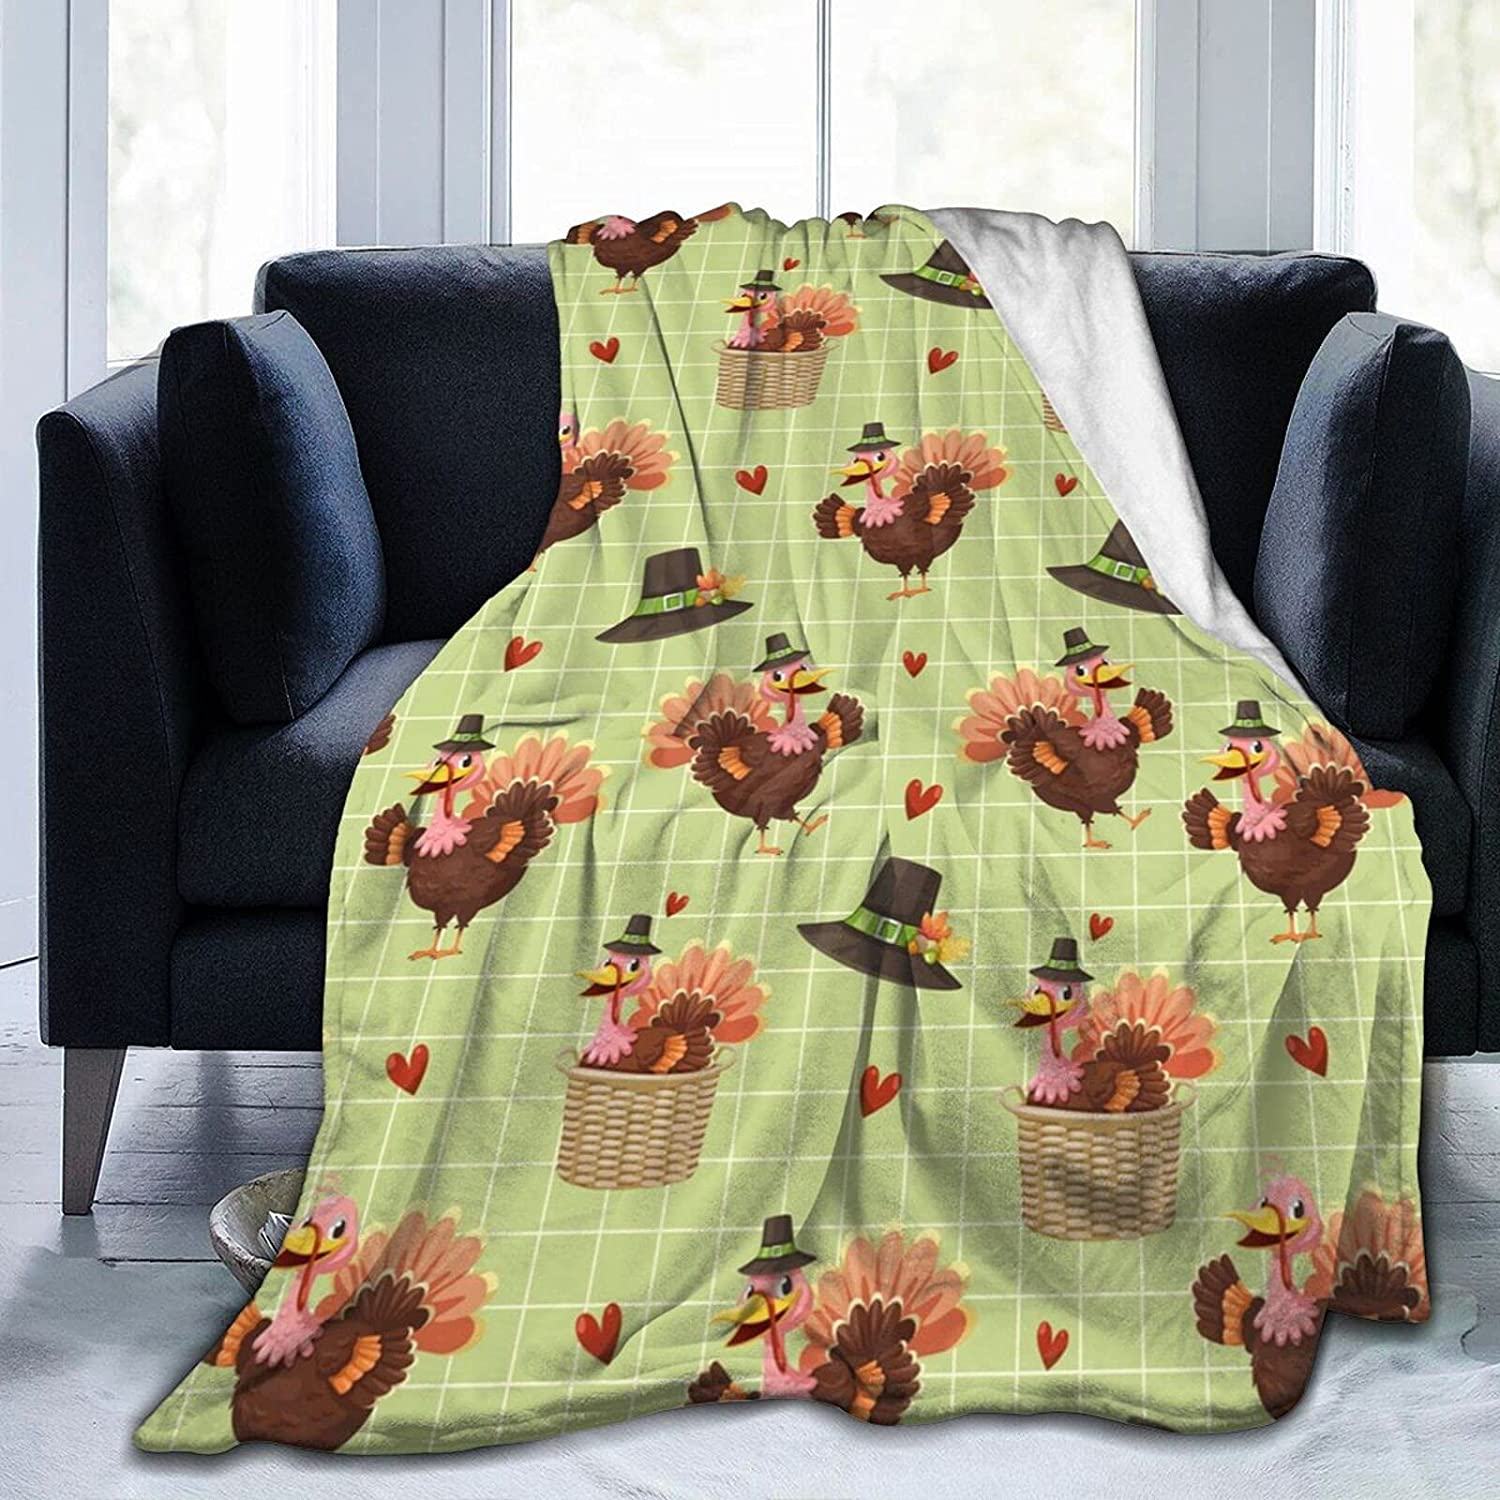 Sordiw Flannel Fleece Quality inspection Bed Blanket Outlet ☆ Free Shipping Pattern Turkey with Throw for